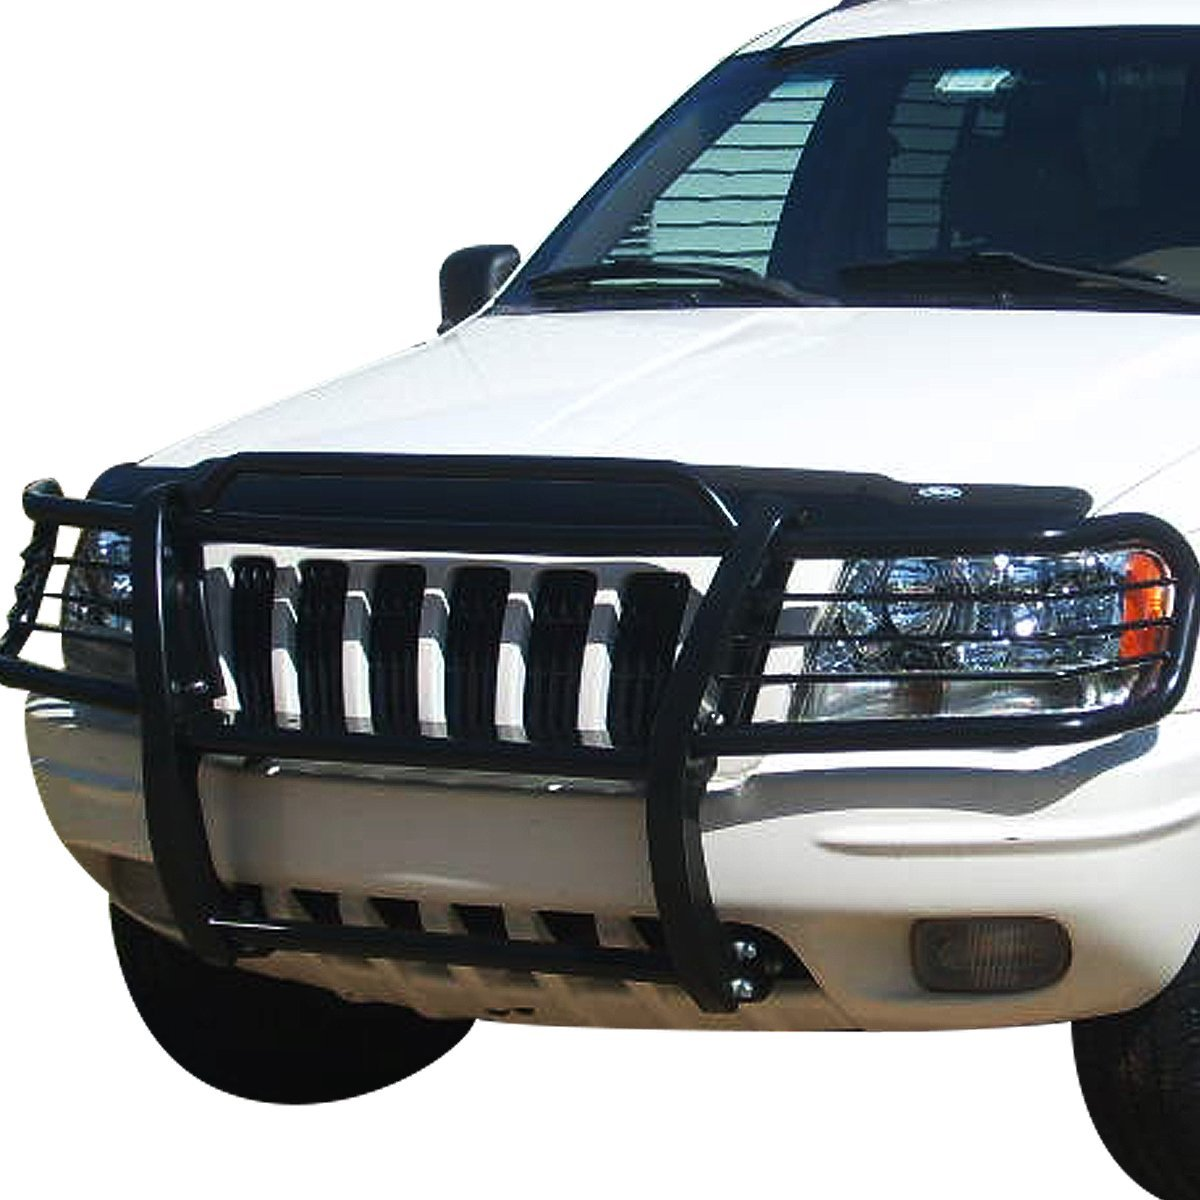 Jeep Grill Guards And Bumpers : Jeep grand cherokee wj front bumper protector brush